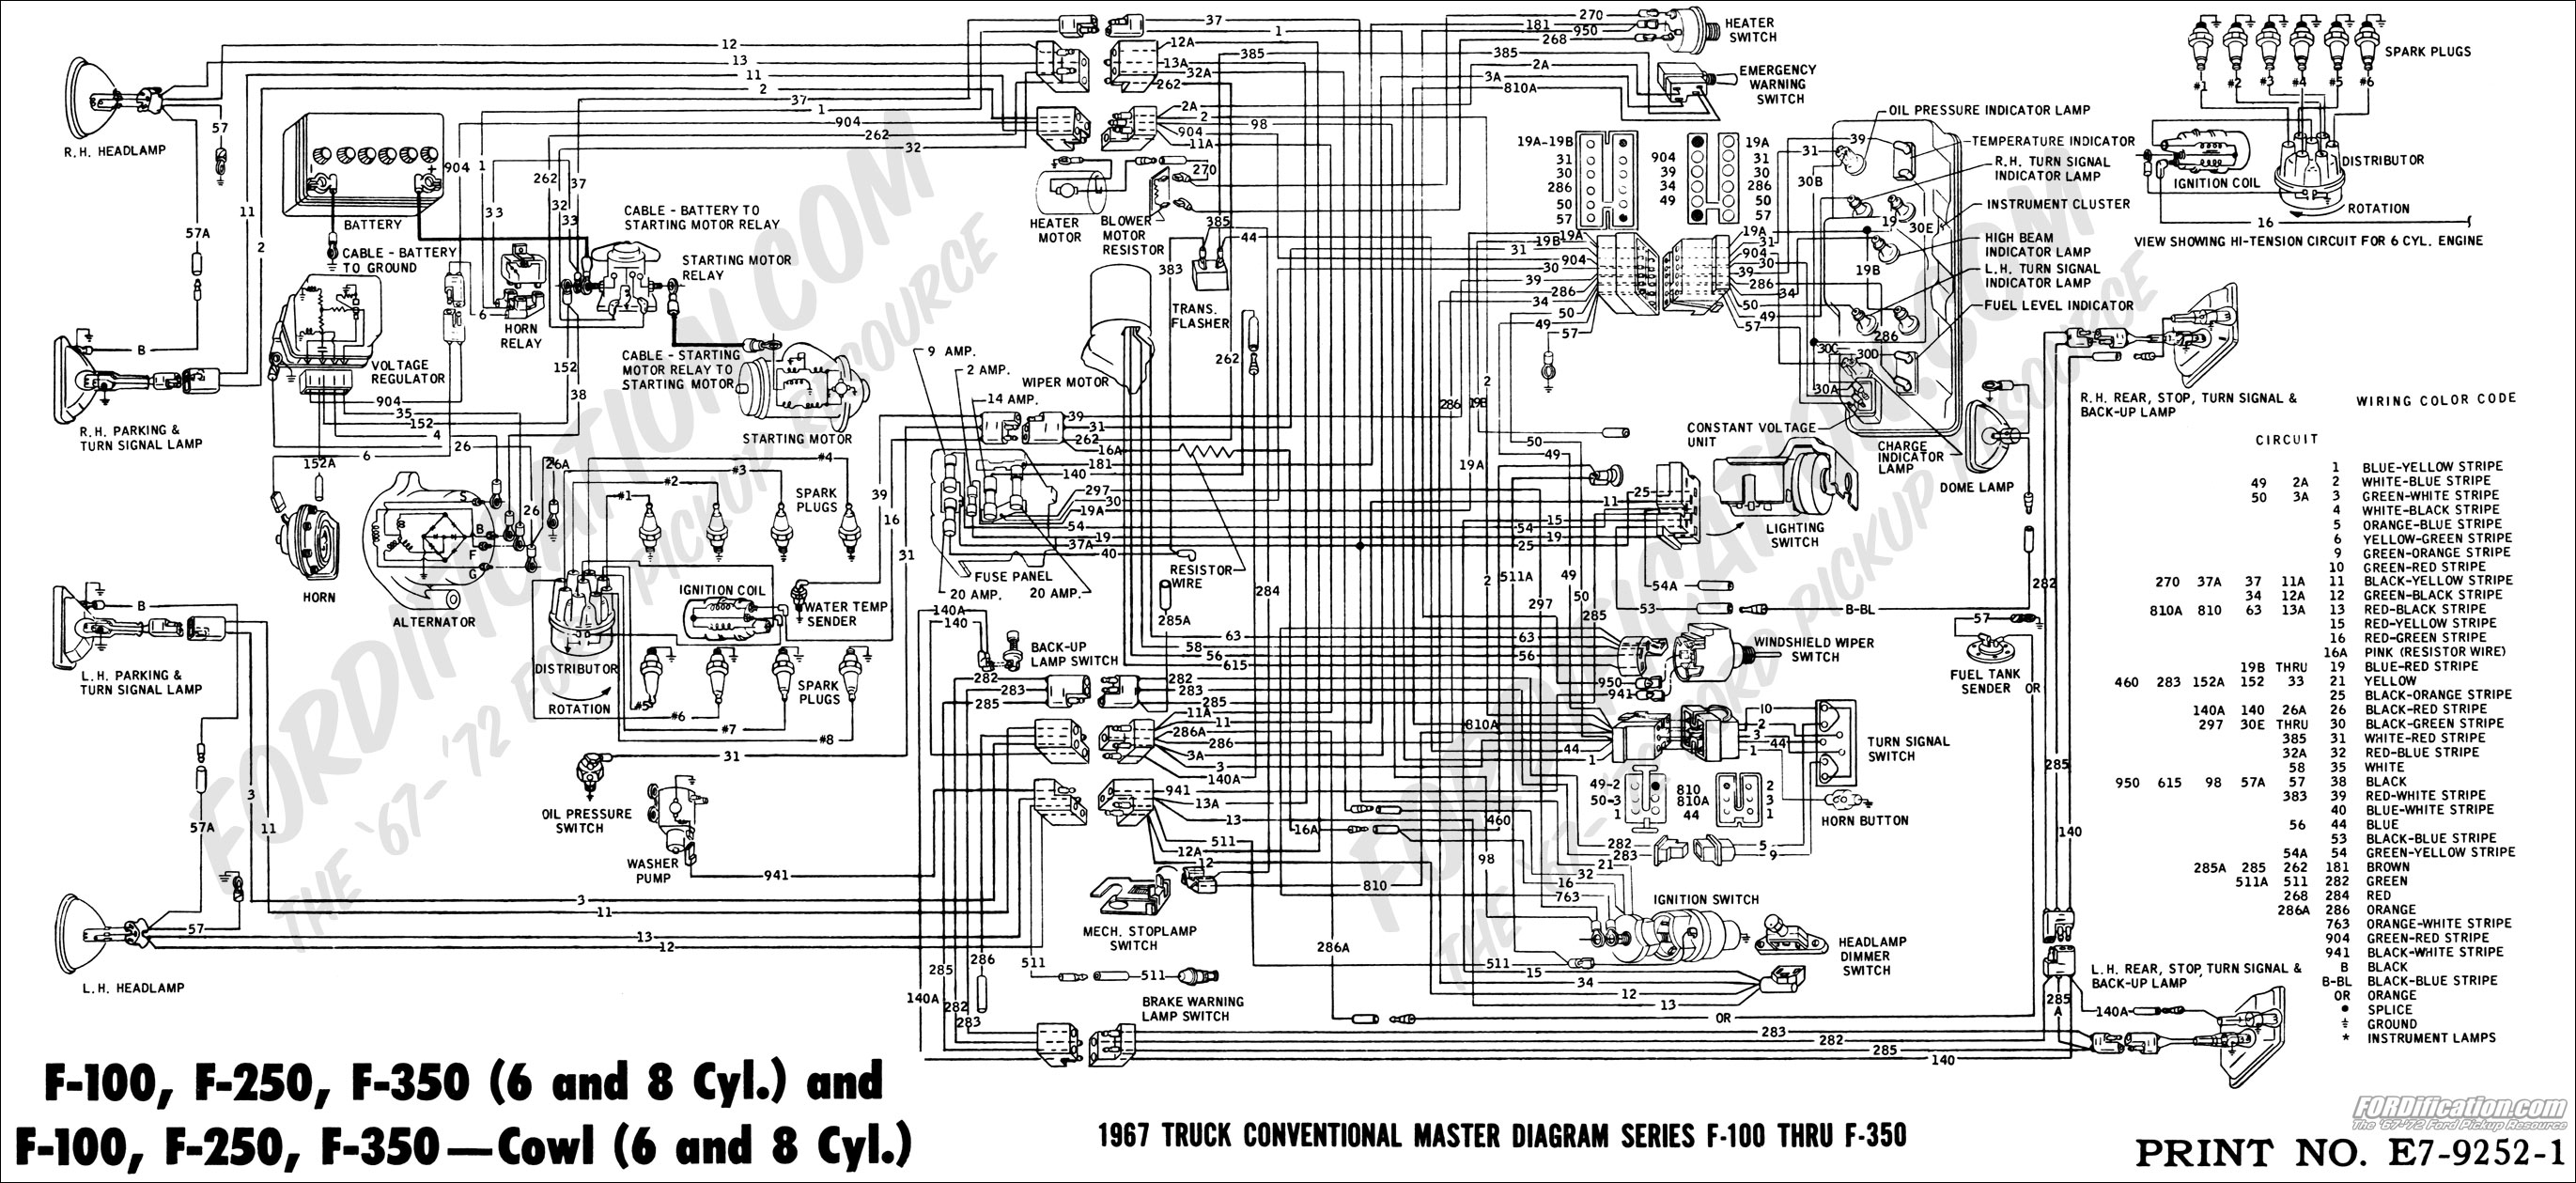 67masterdiagram 93 ford f 350 trailer wiring diagram wiring diagram simonand 1999 ford f450 wiring diagram at panicattacktreatment.co